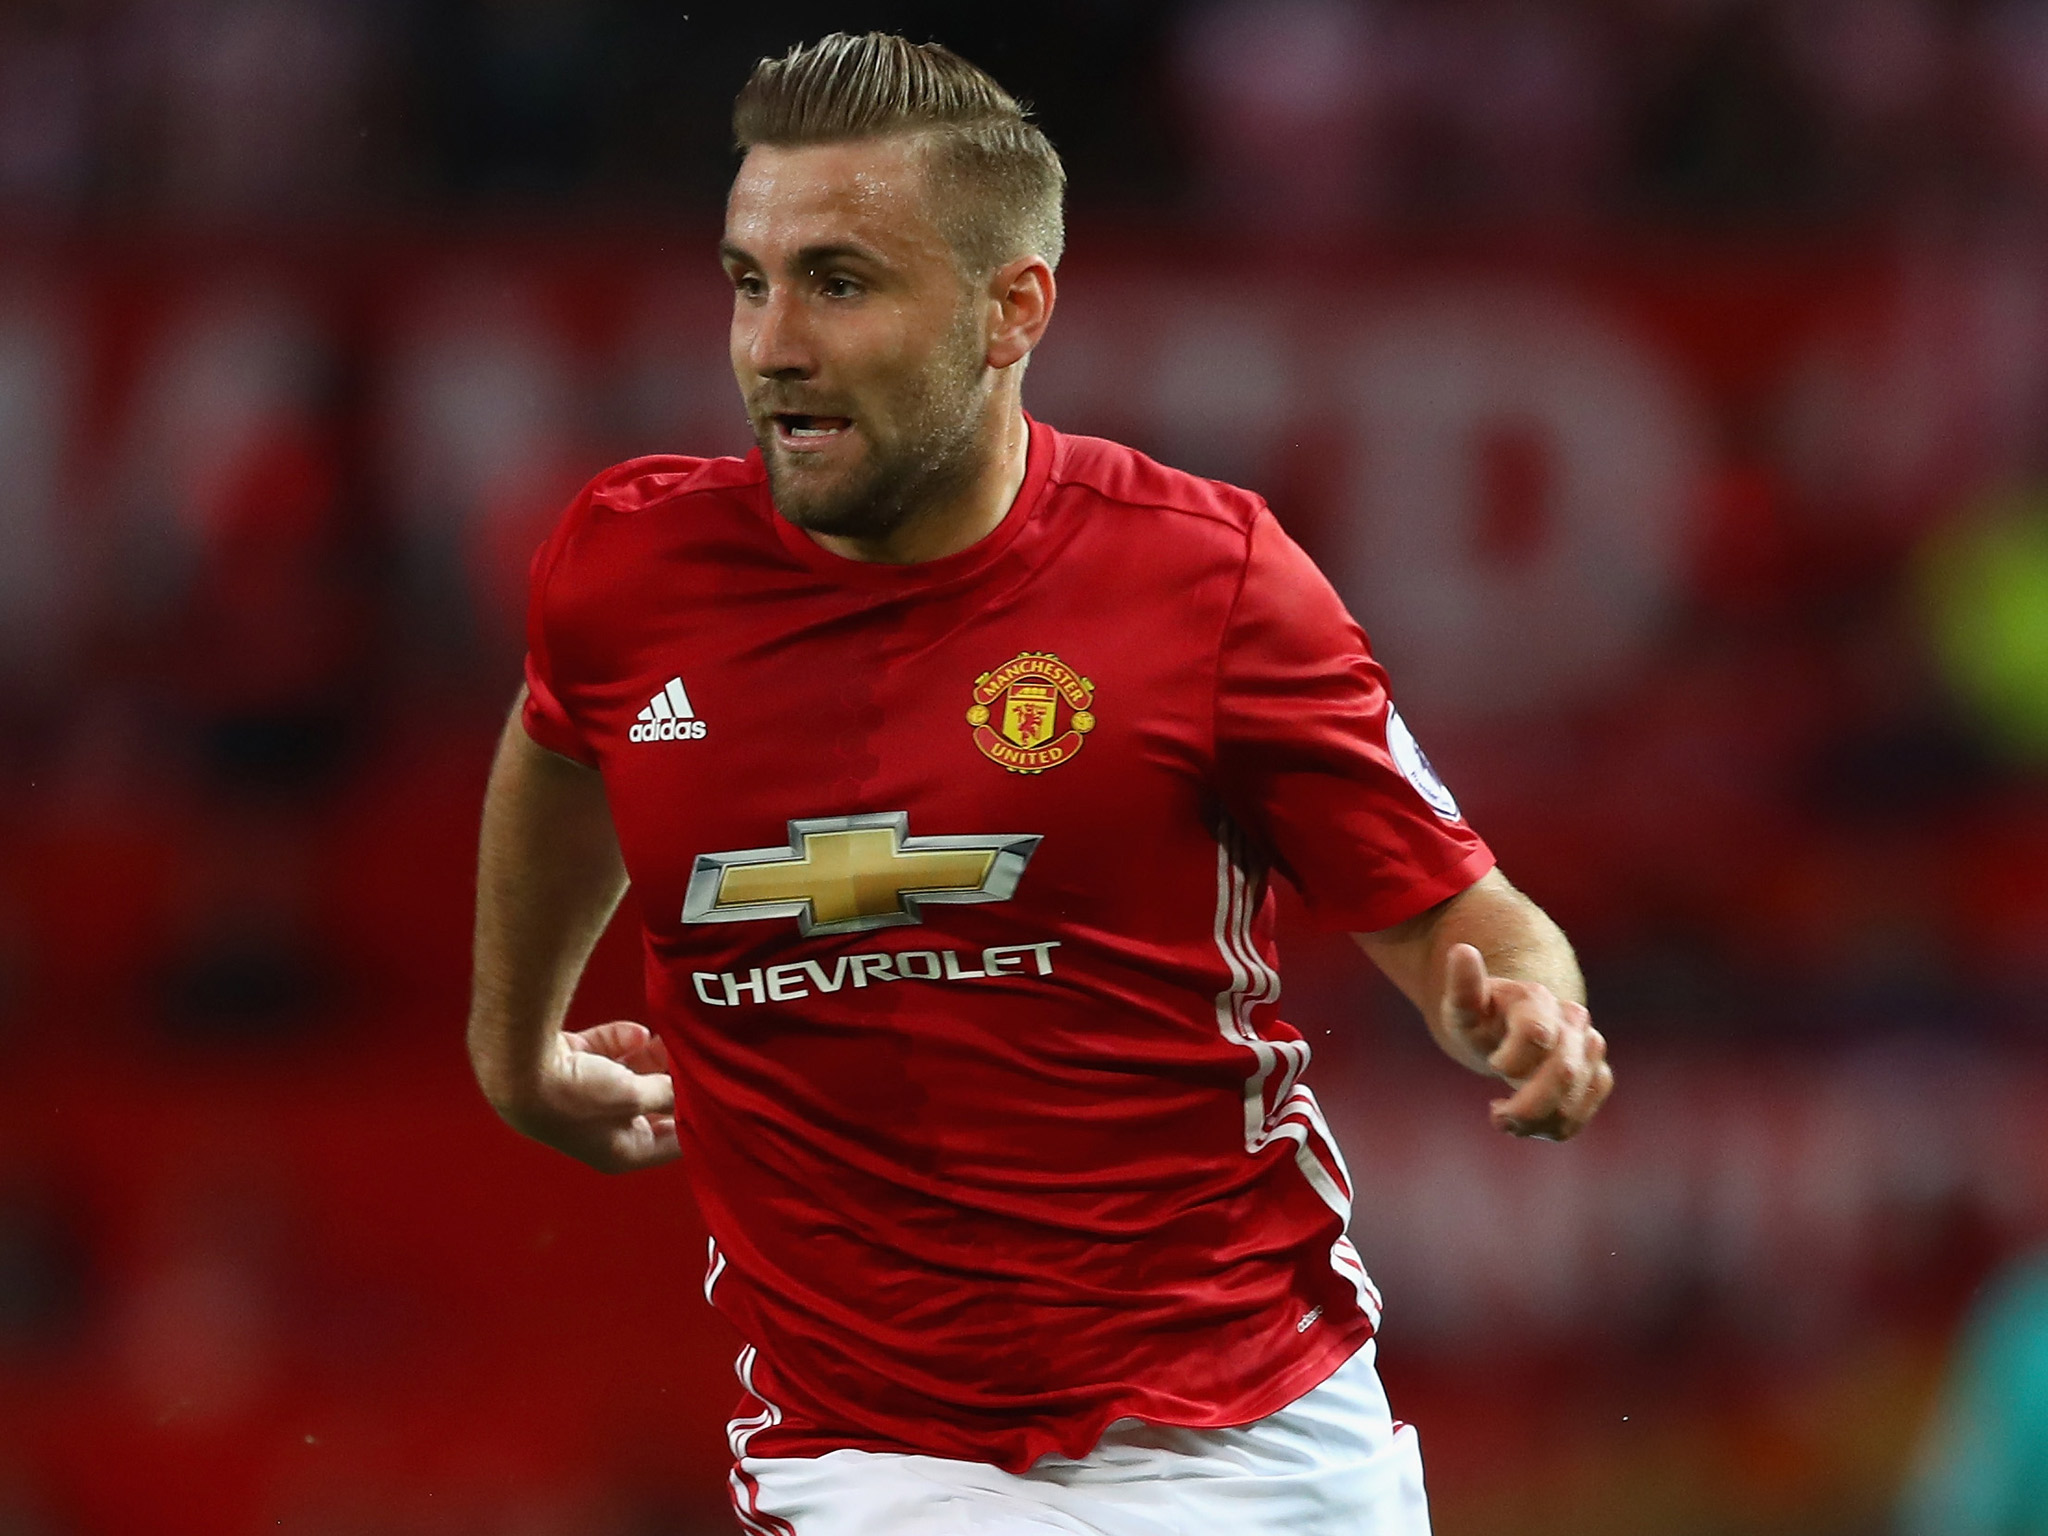 Image Luke Shaw Manchester United Download 2048x1536